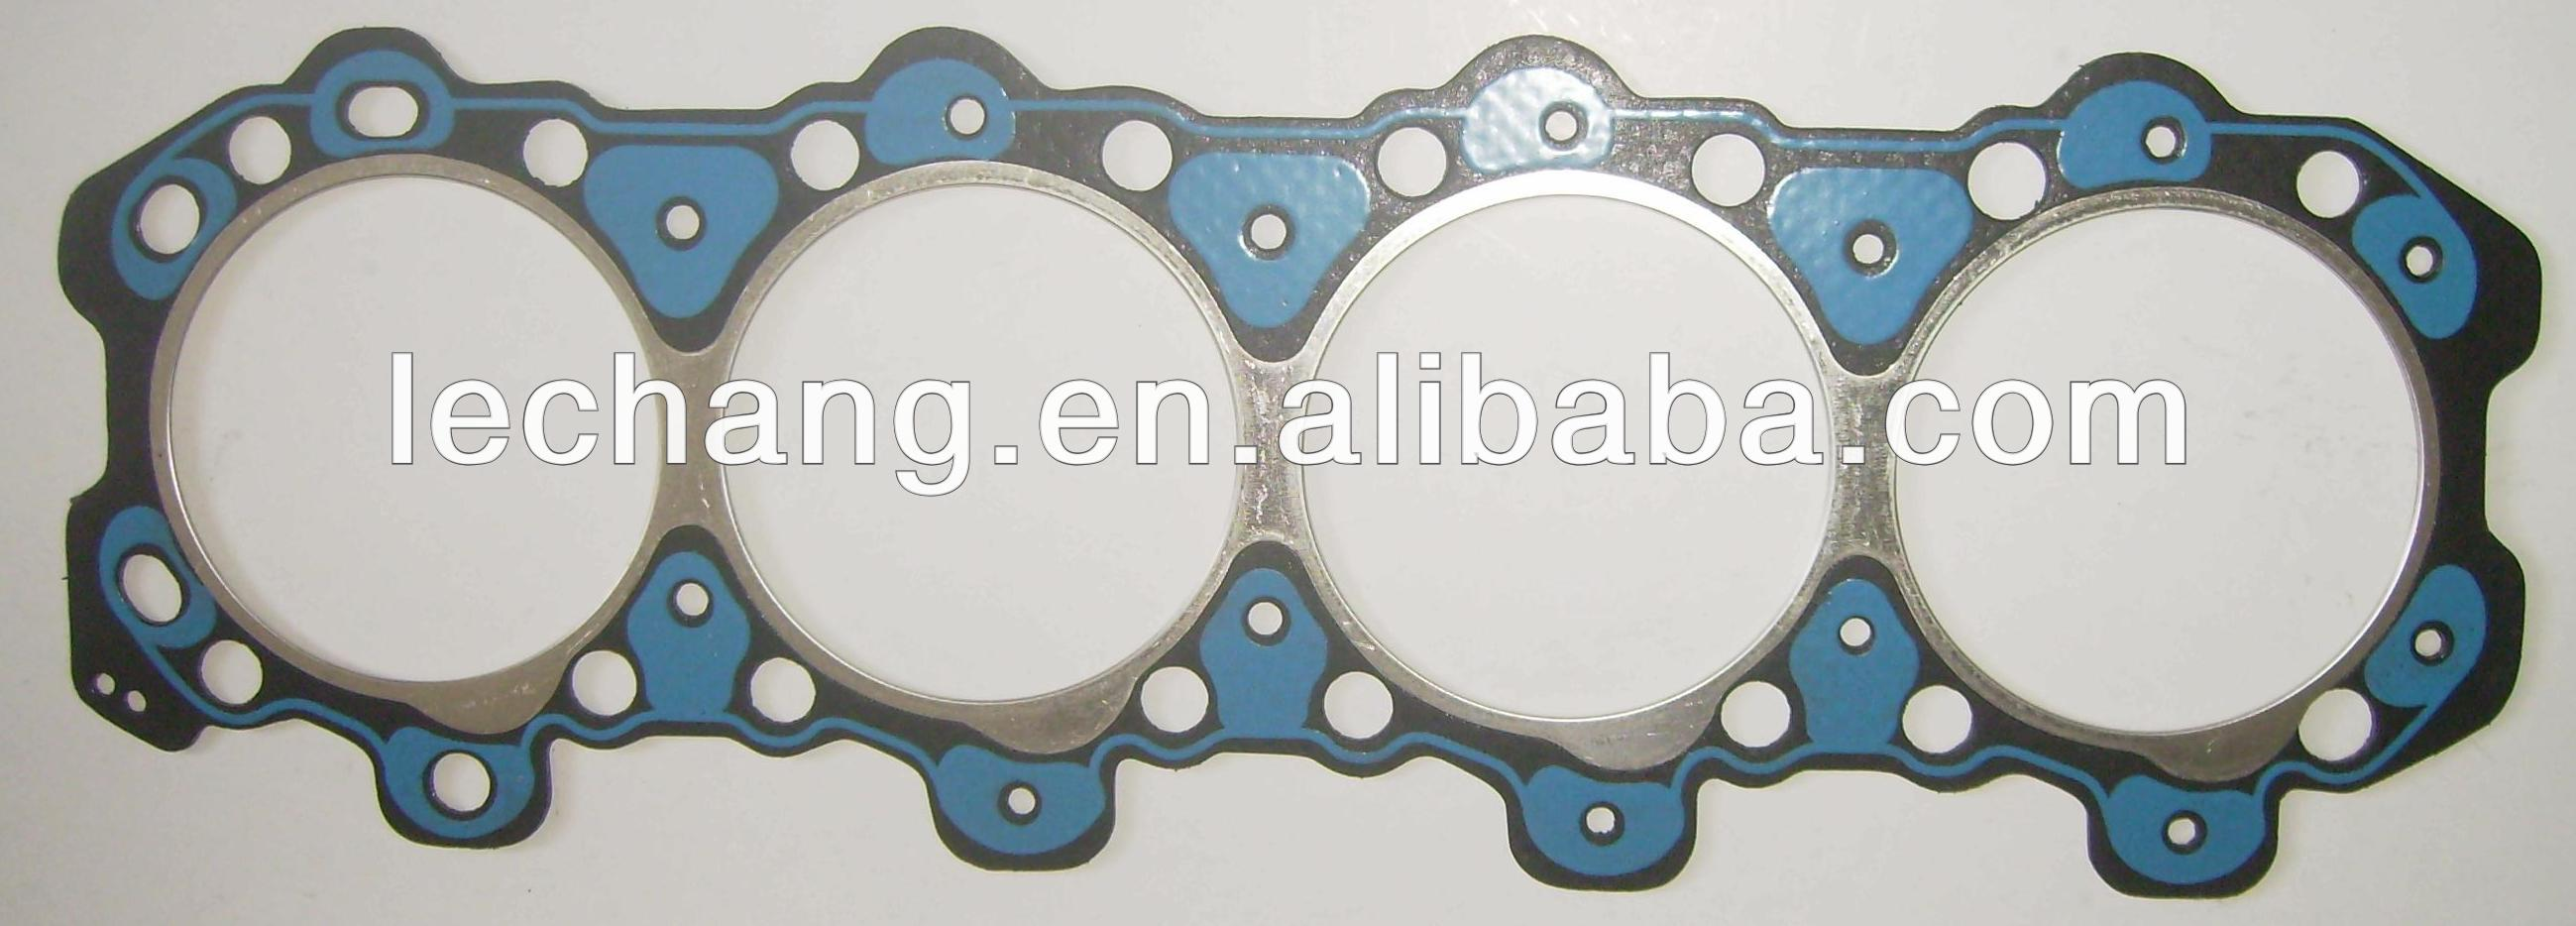 CYLINDER HEAD GASKET FOR LISTER LPW 86MM 754-40891